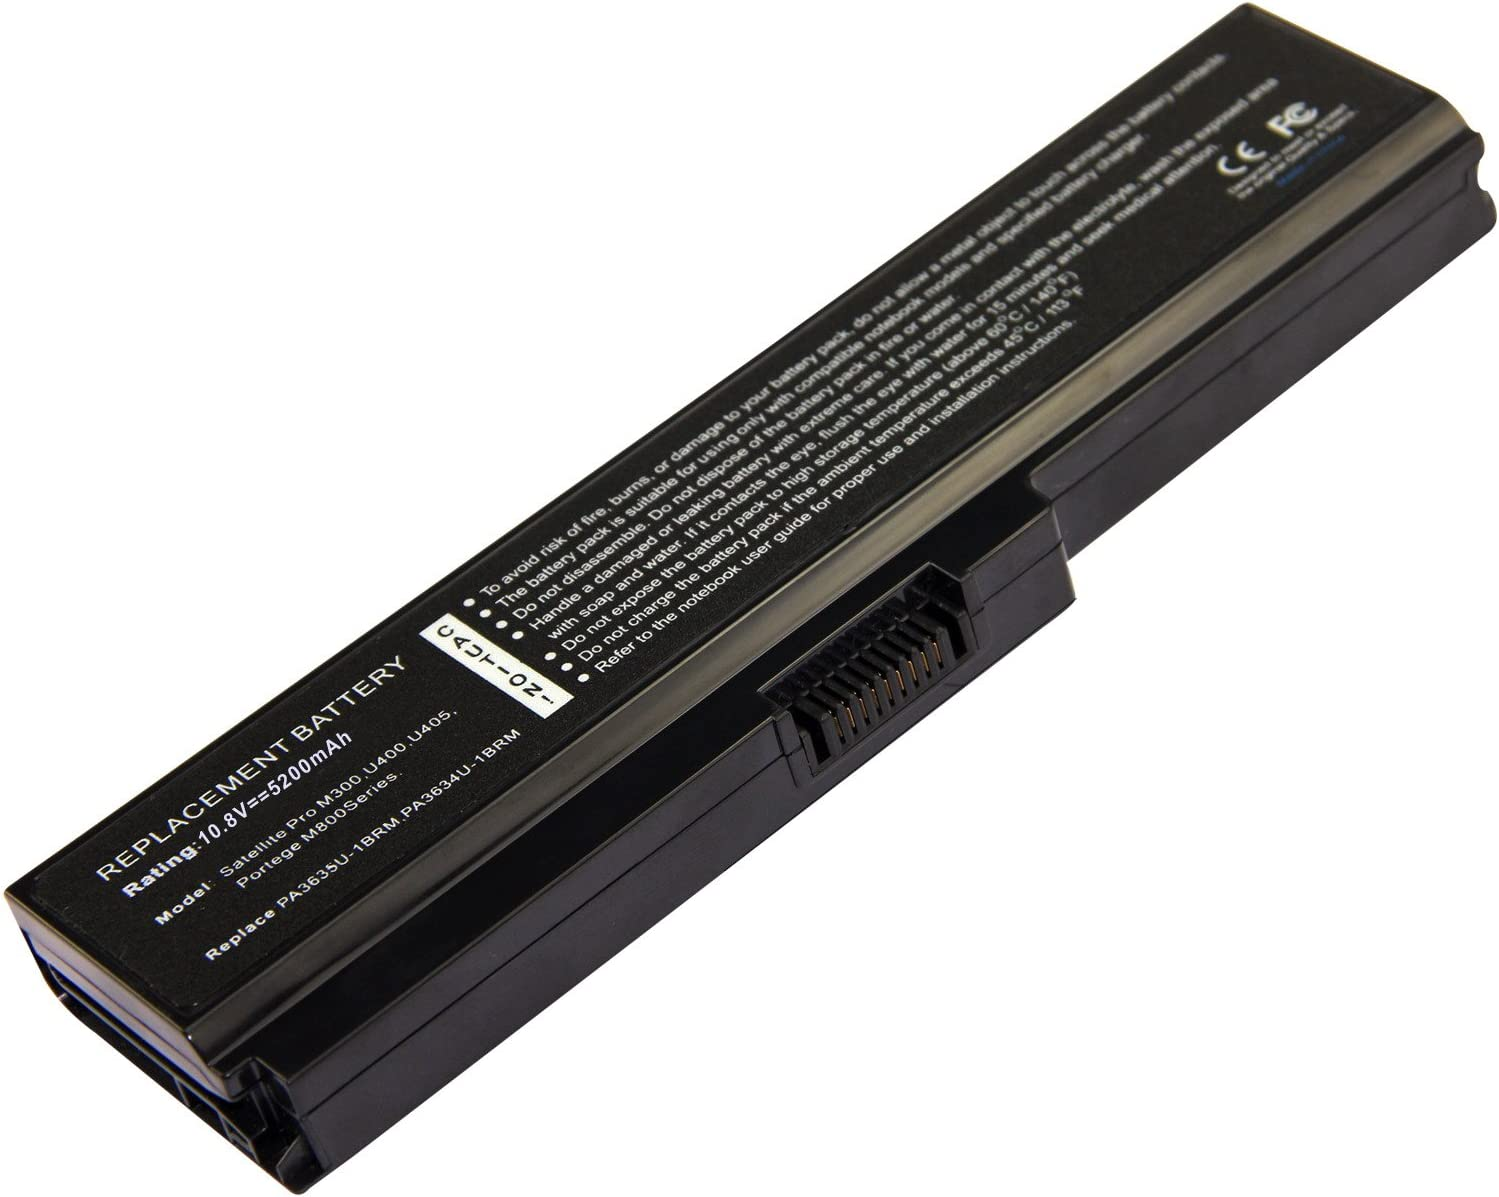 Exxact Parts SolutionNotebook Li-ION Battery for Toshiba PA3634U-1BAS PA3634U-1BRS PA3635U-1BAM PA3635U-1BRM PA3636U-1BRL PA3638U-1BAP PA3728U-1BRS PABAS116 PABAS117 PABAS178 PABAS228 PABAS230